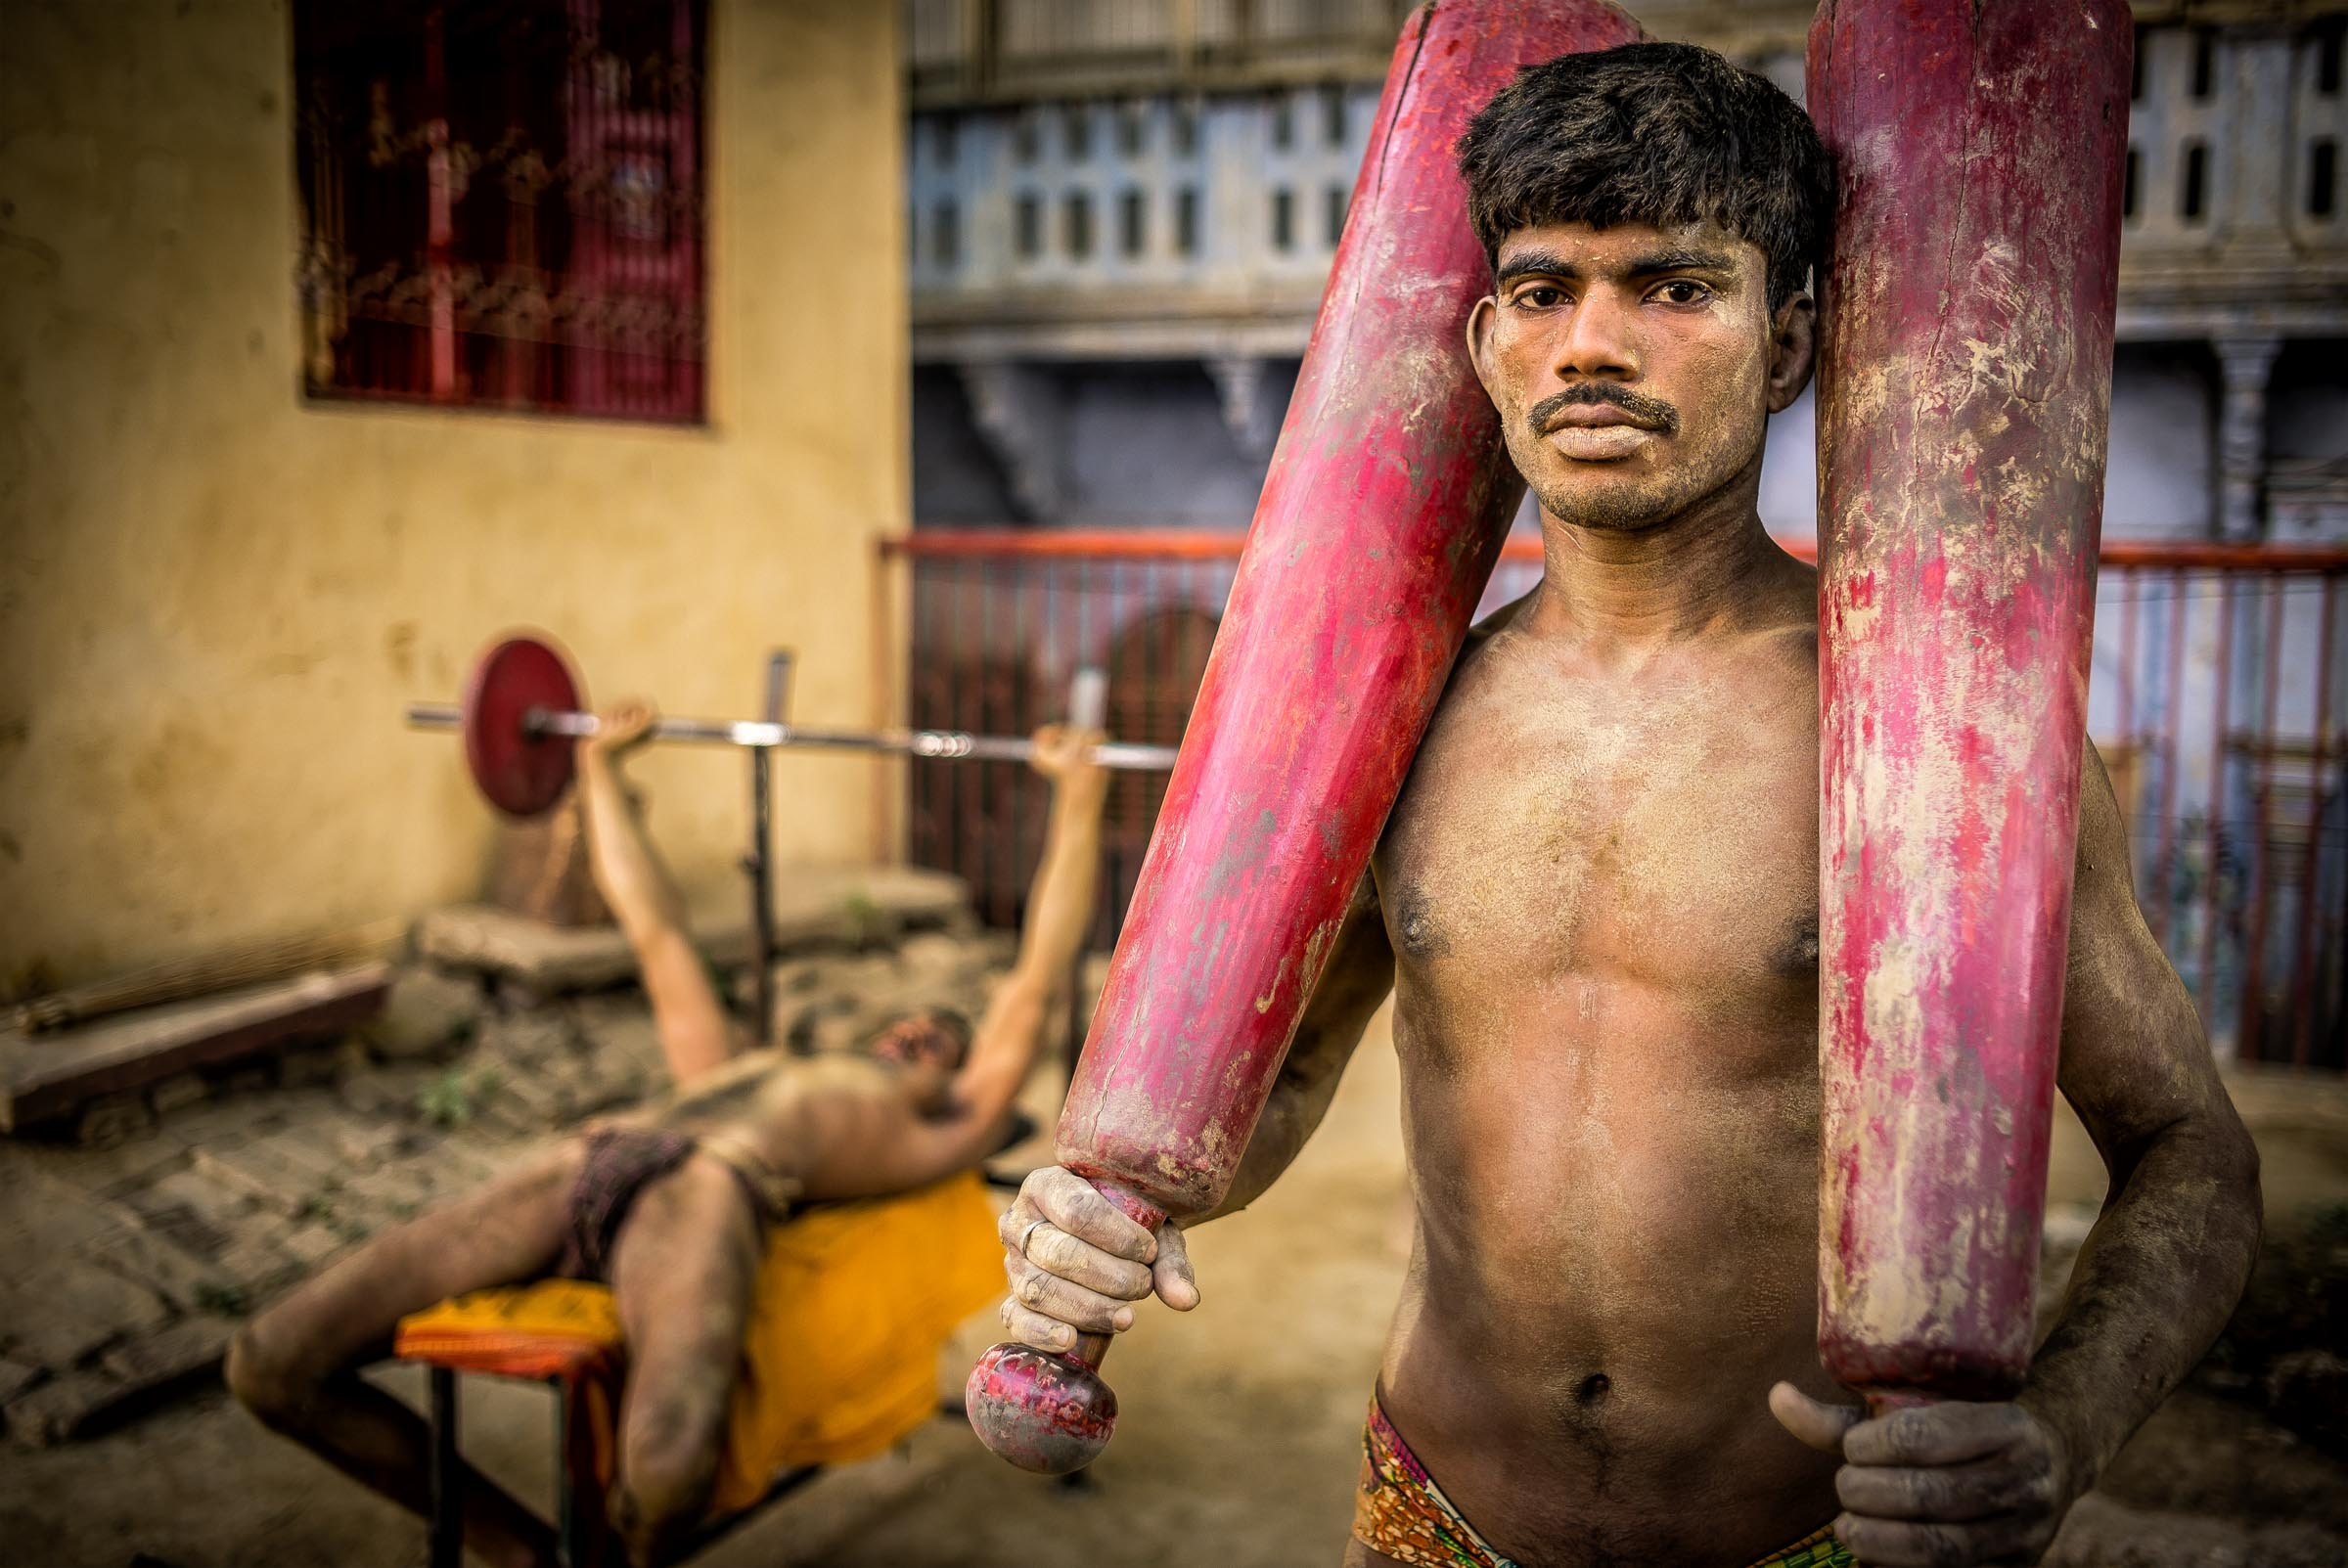 Kushti fighter. Varanasi, India